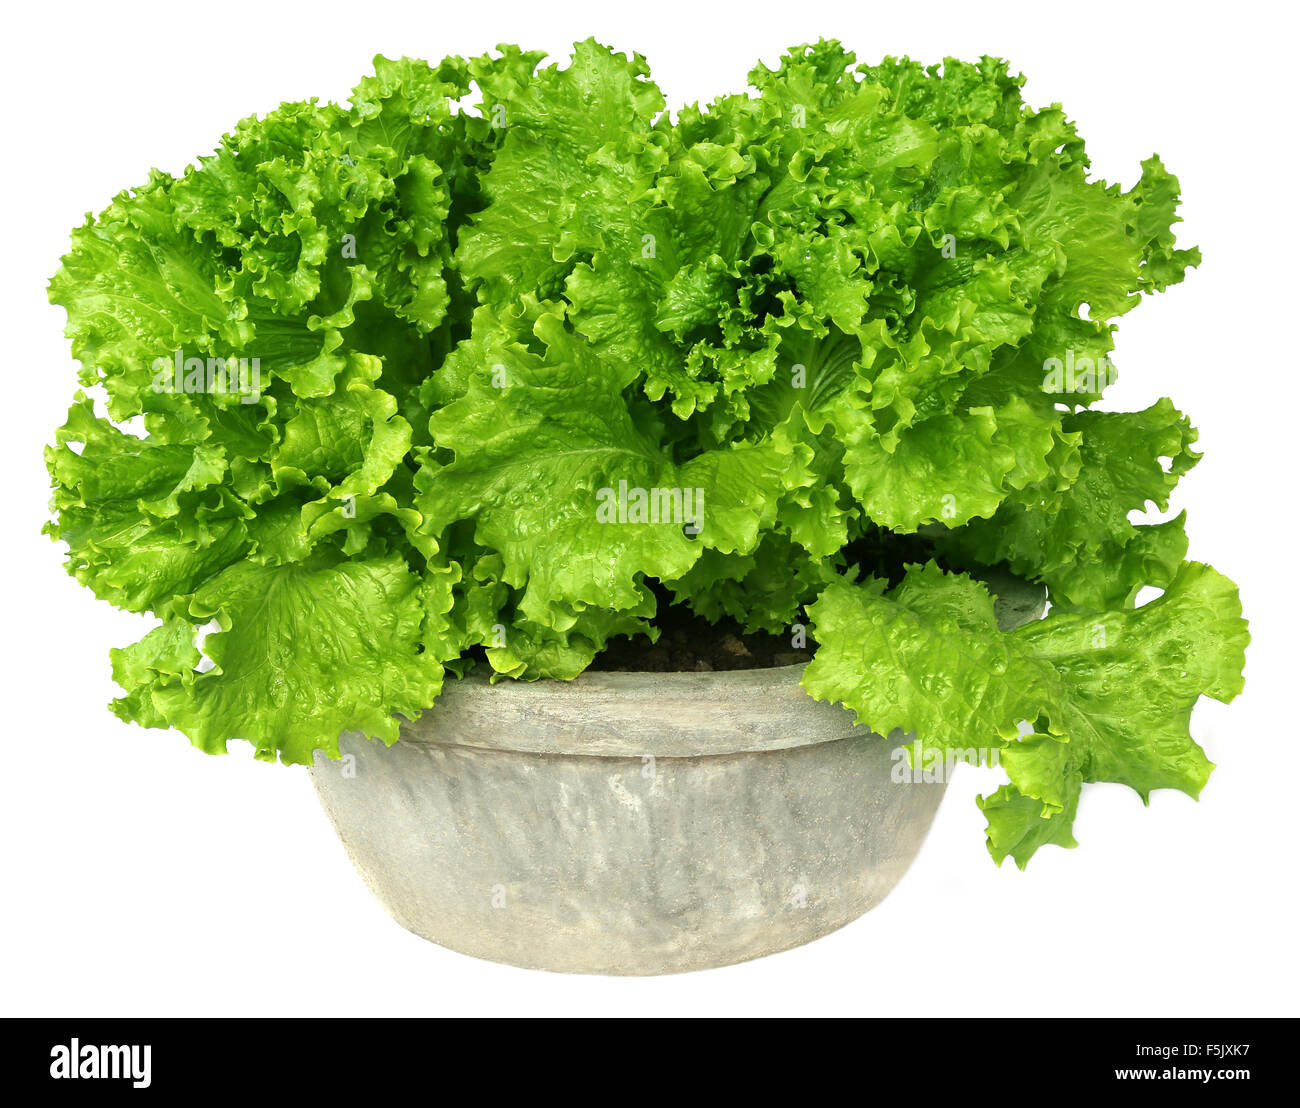 Lettuce in a tub over white background - Stock Image